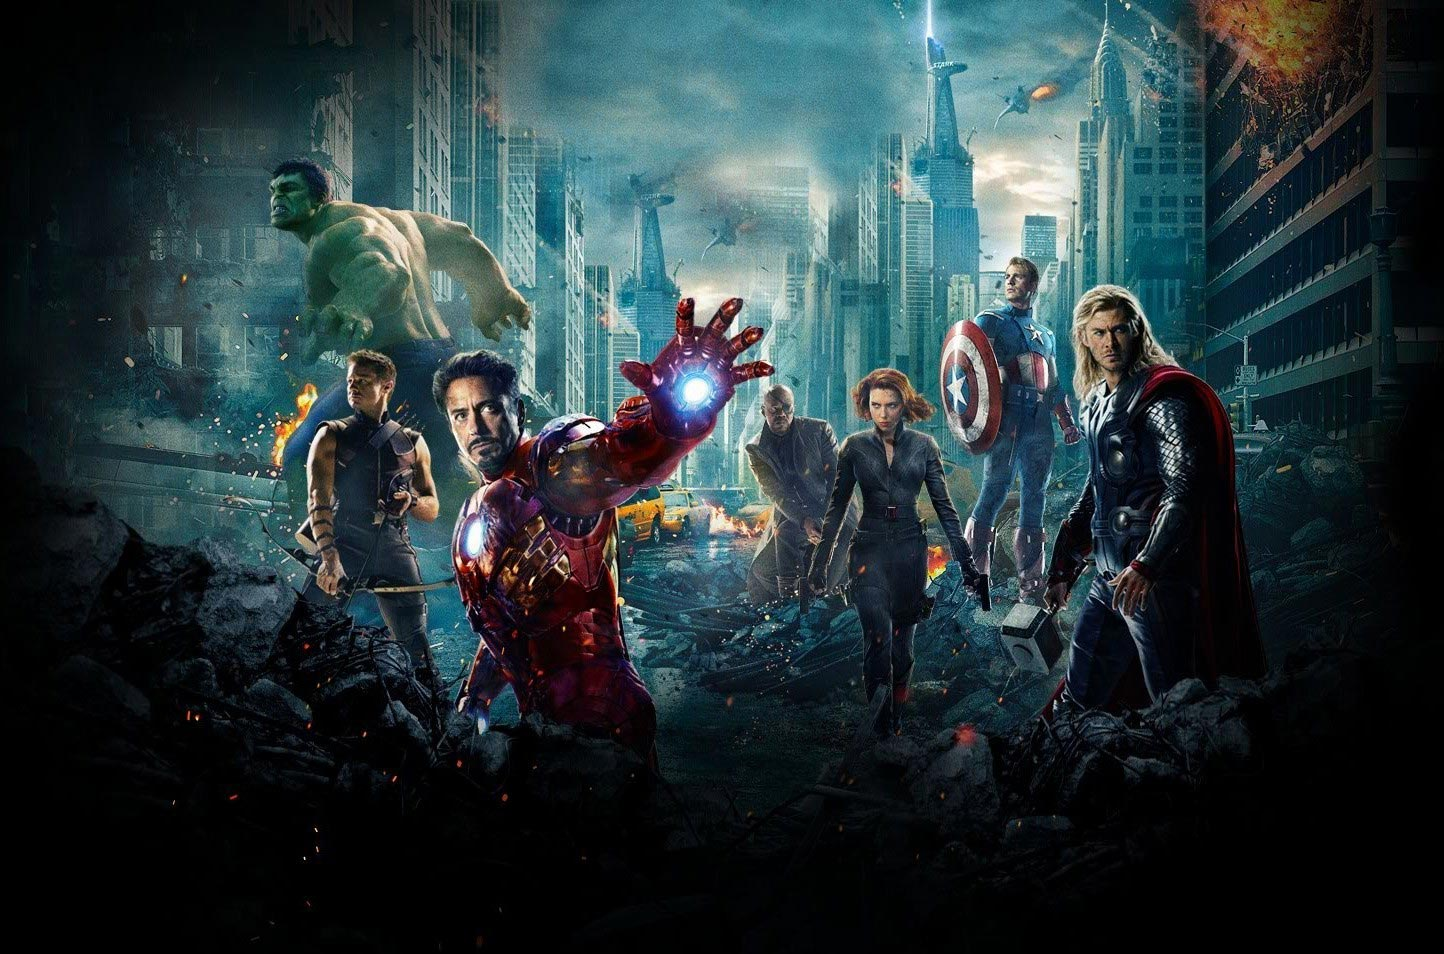 https://i1.wp.com/www.filmofilia.com/wp-content/uploads/2012/02/The_Avengers.jpg